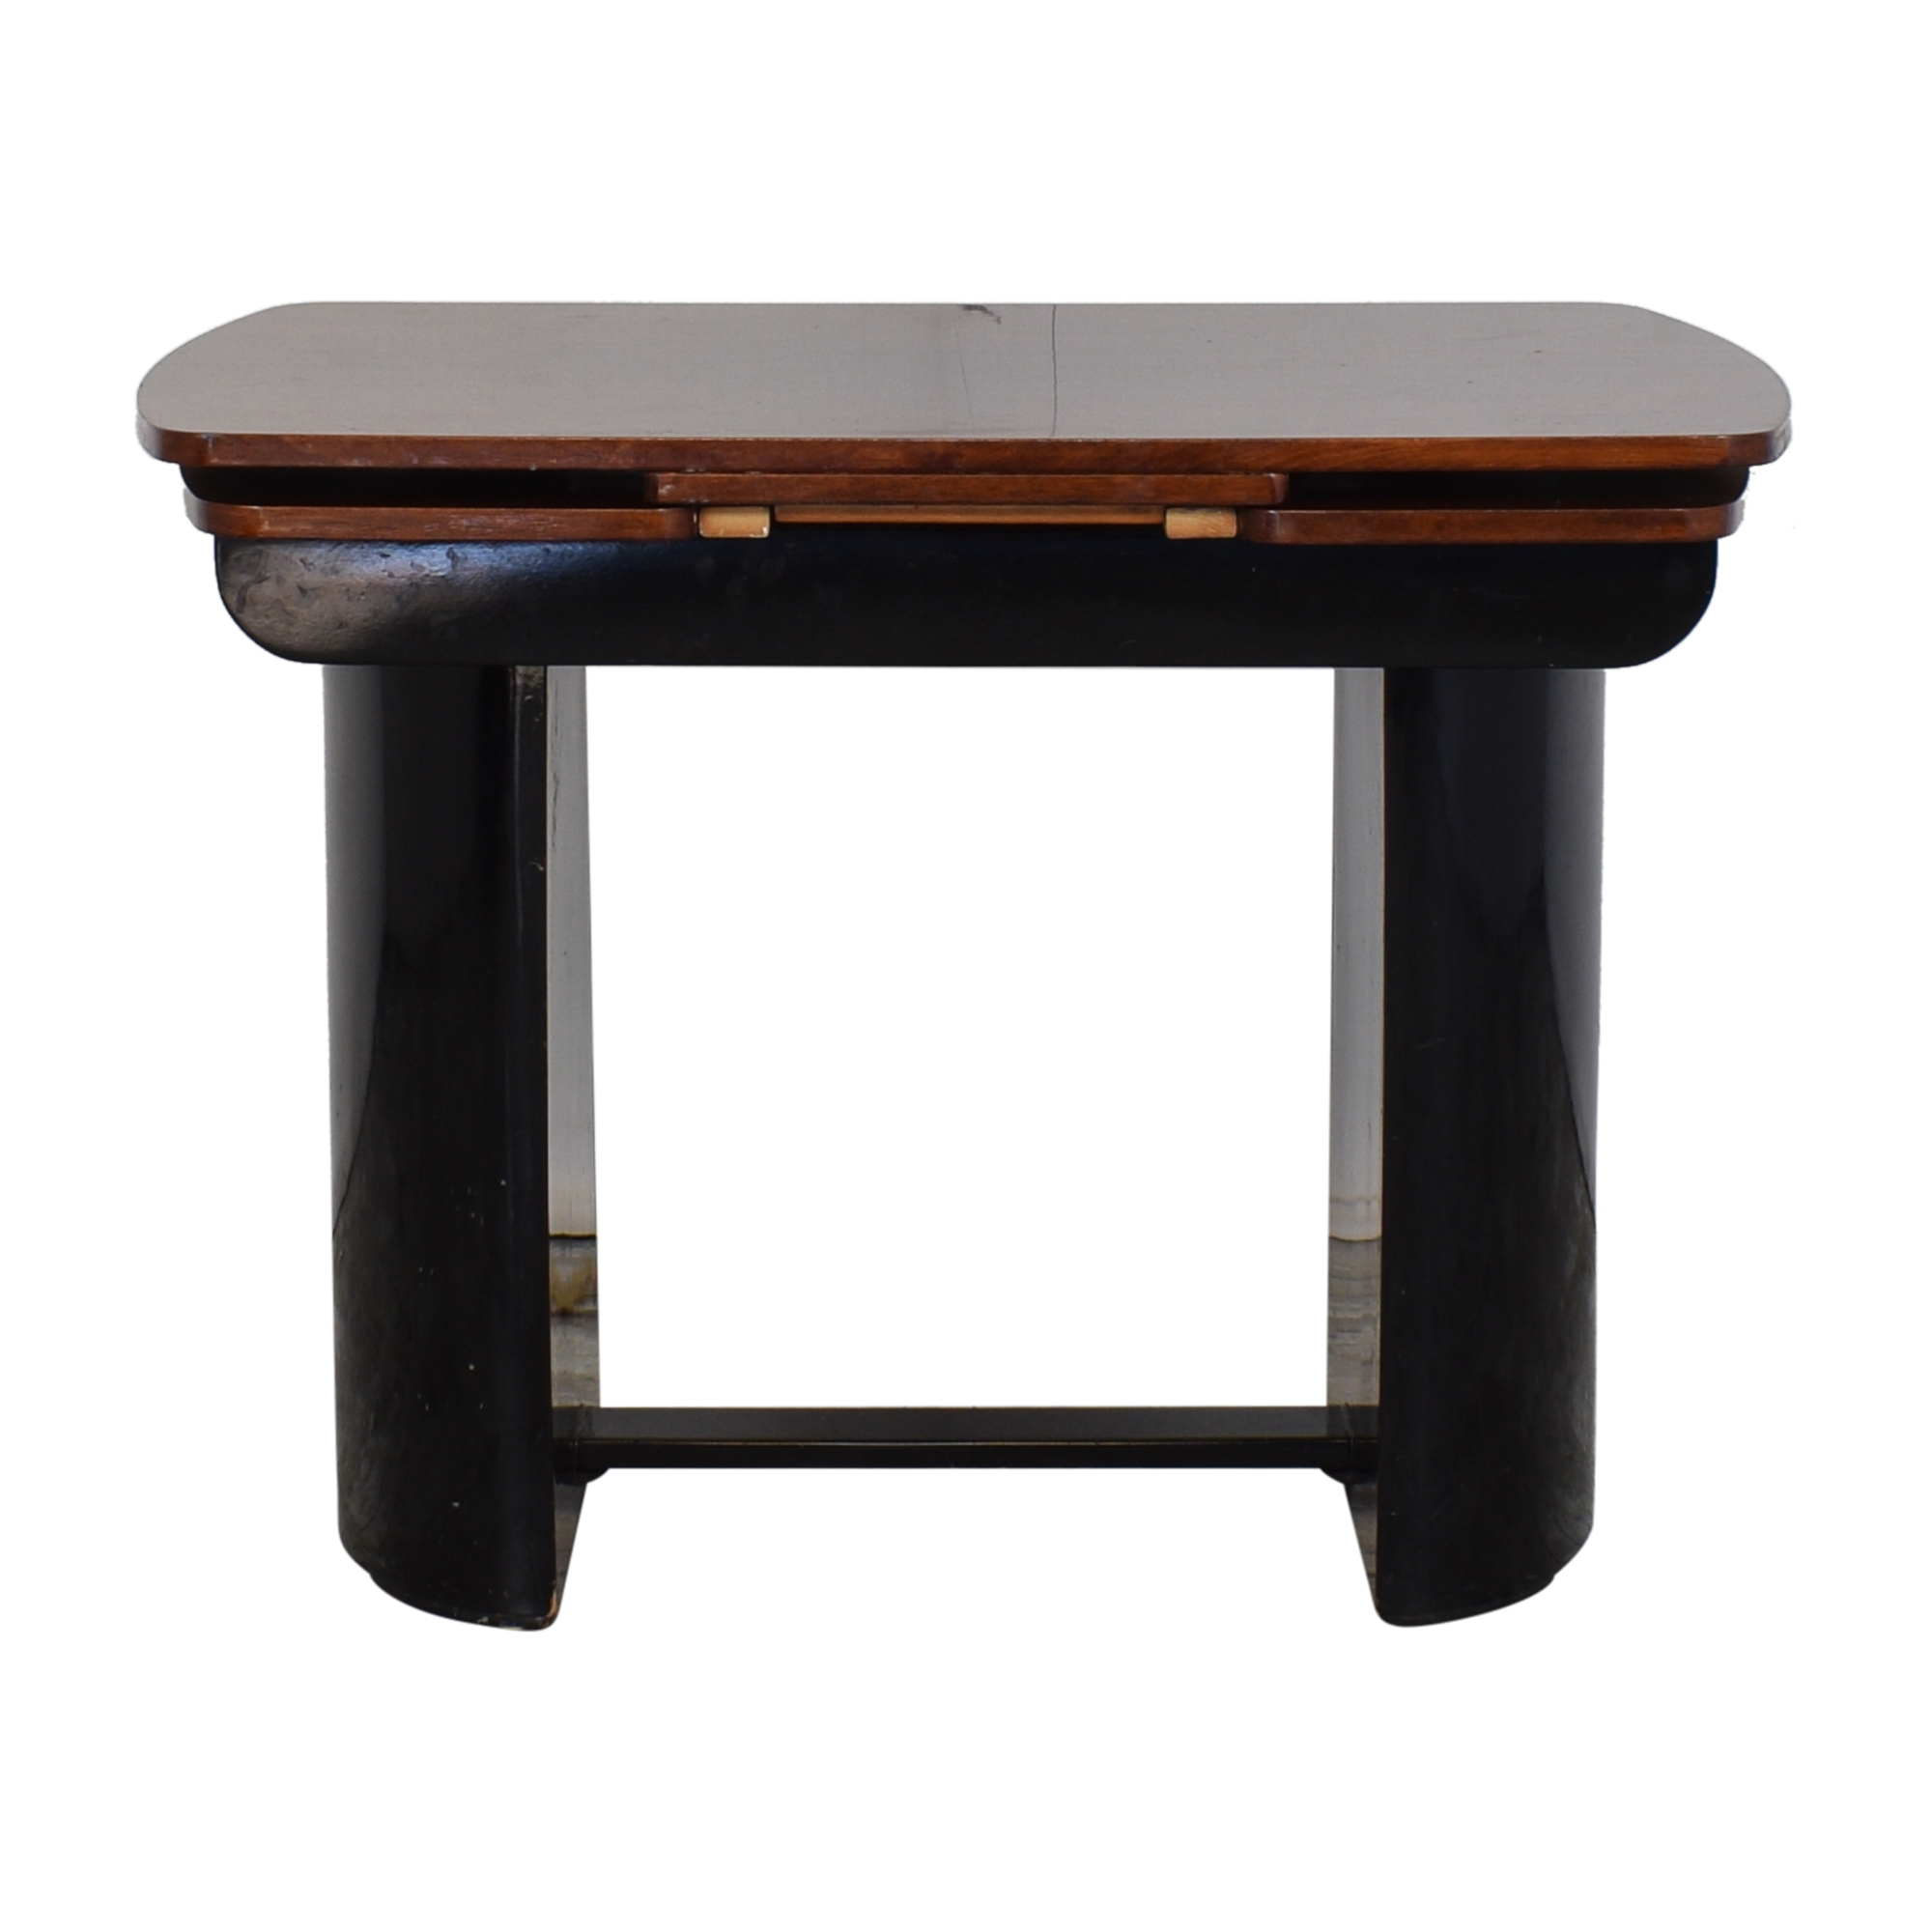 Art Deco Style Expanding Table dimensions